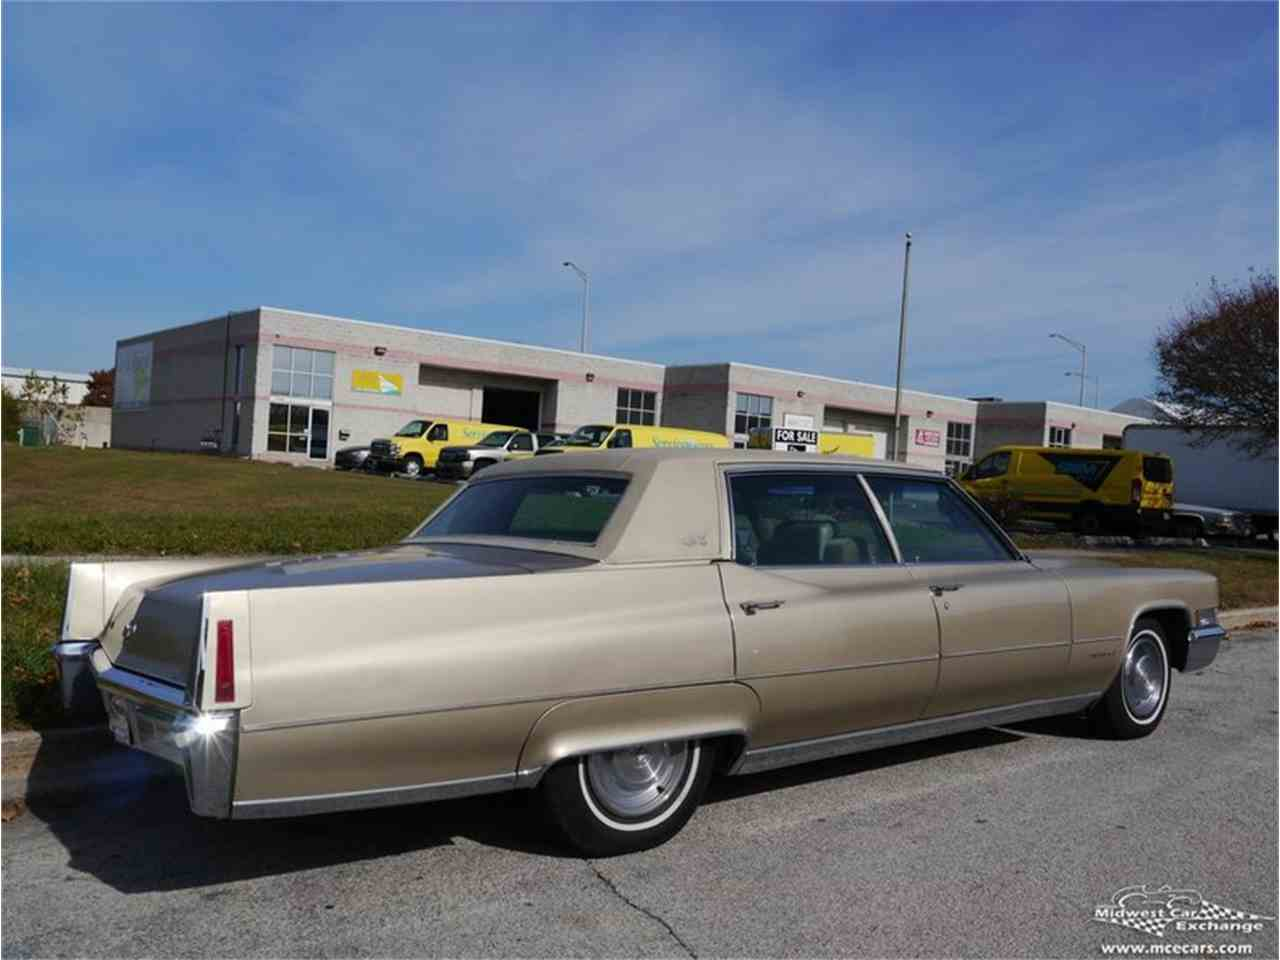 Large Picture of 1970 Cadillac Fleetwood Brougham - $12,900.00 Offered by Midwest Car Exchange - M9KI